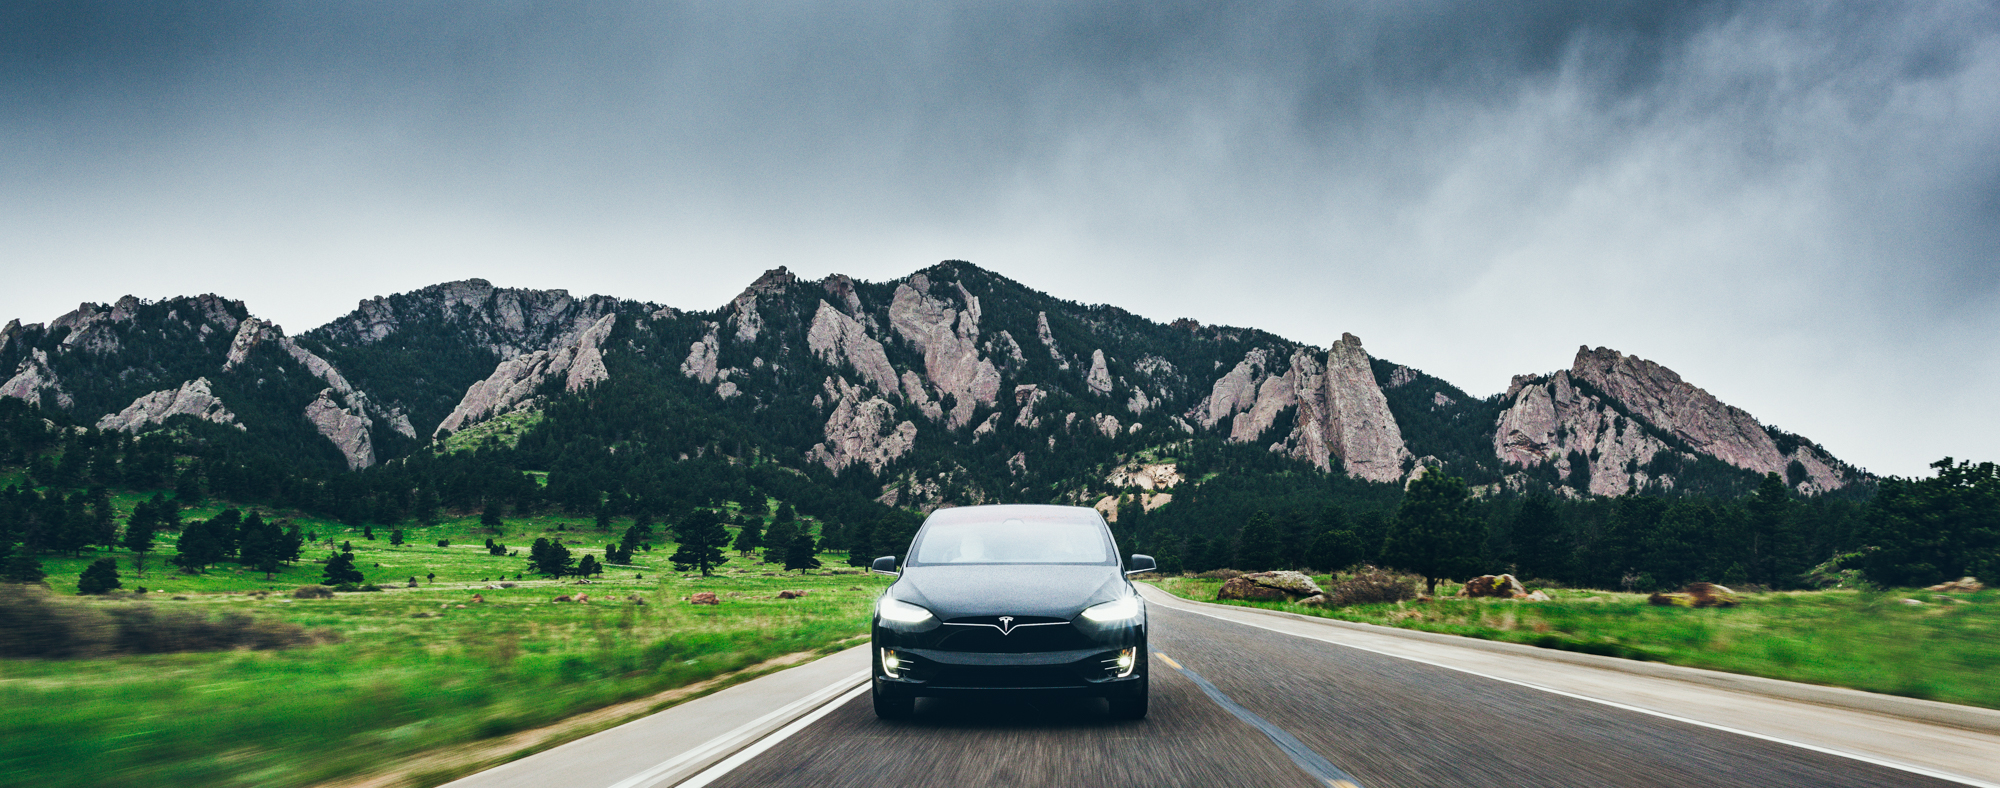 Tesla Model X Driving - Greg Mionske - Advertising and Editorial Photographer in Denver